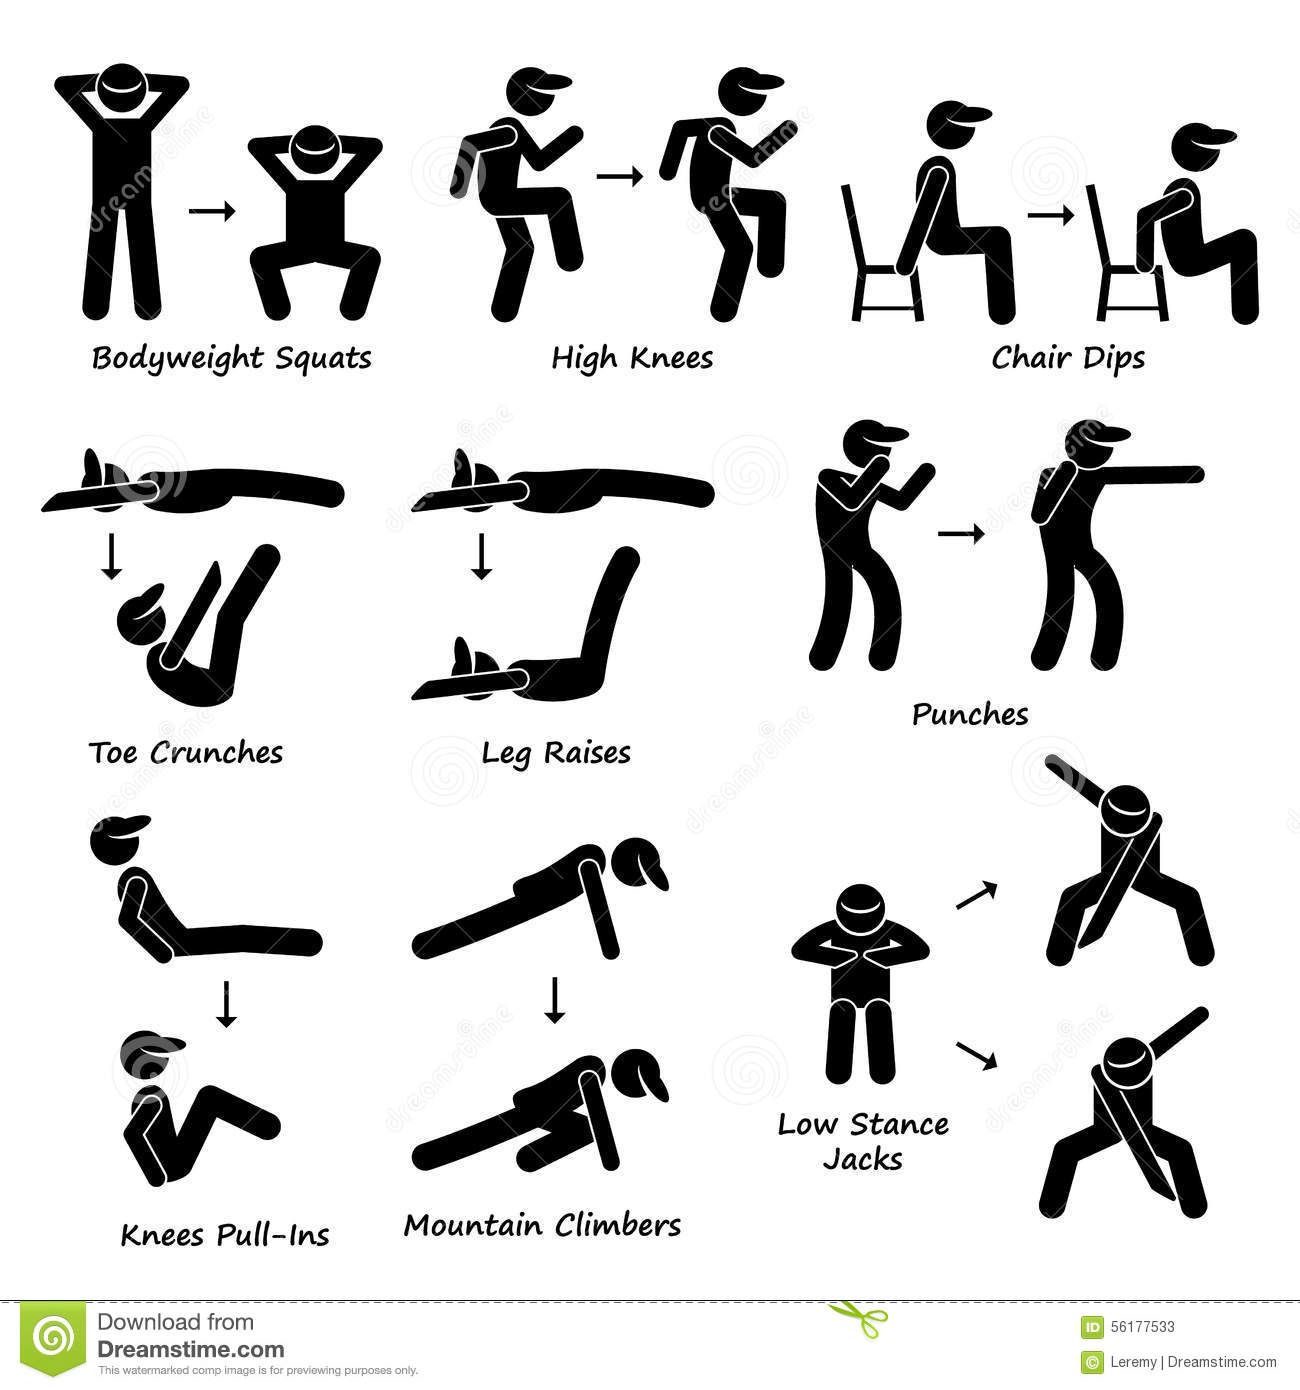 hight resolution of a set of human pictogram showing plank variation poses they are bodyweight squats high knees chair dip toe crunches leg crunches punches